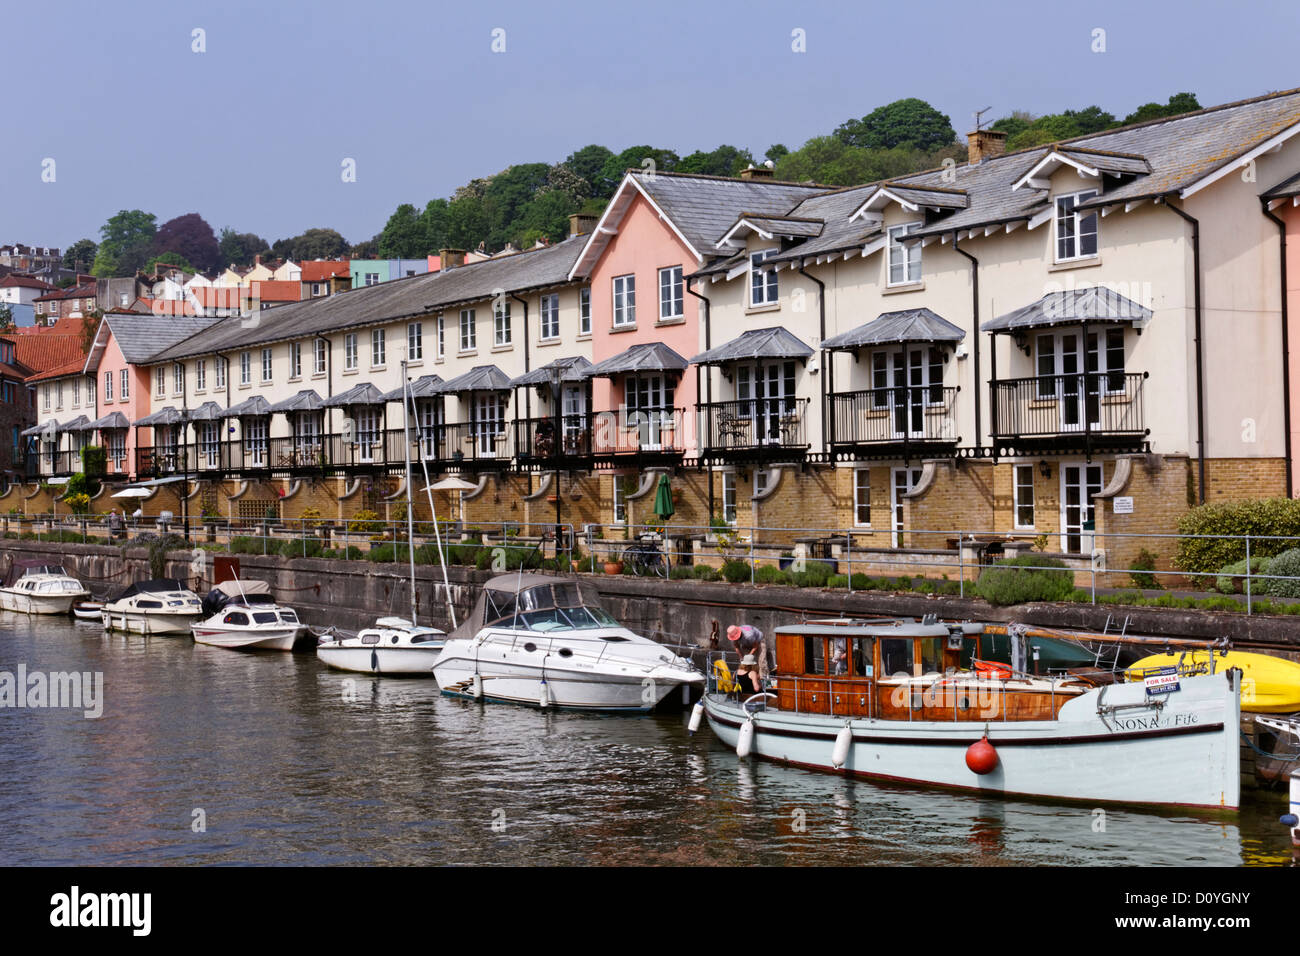 Boats and houses at Harbourside, Bristol, Somerset, England - Stock Image